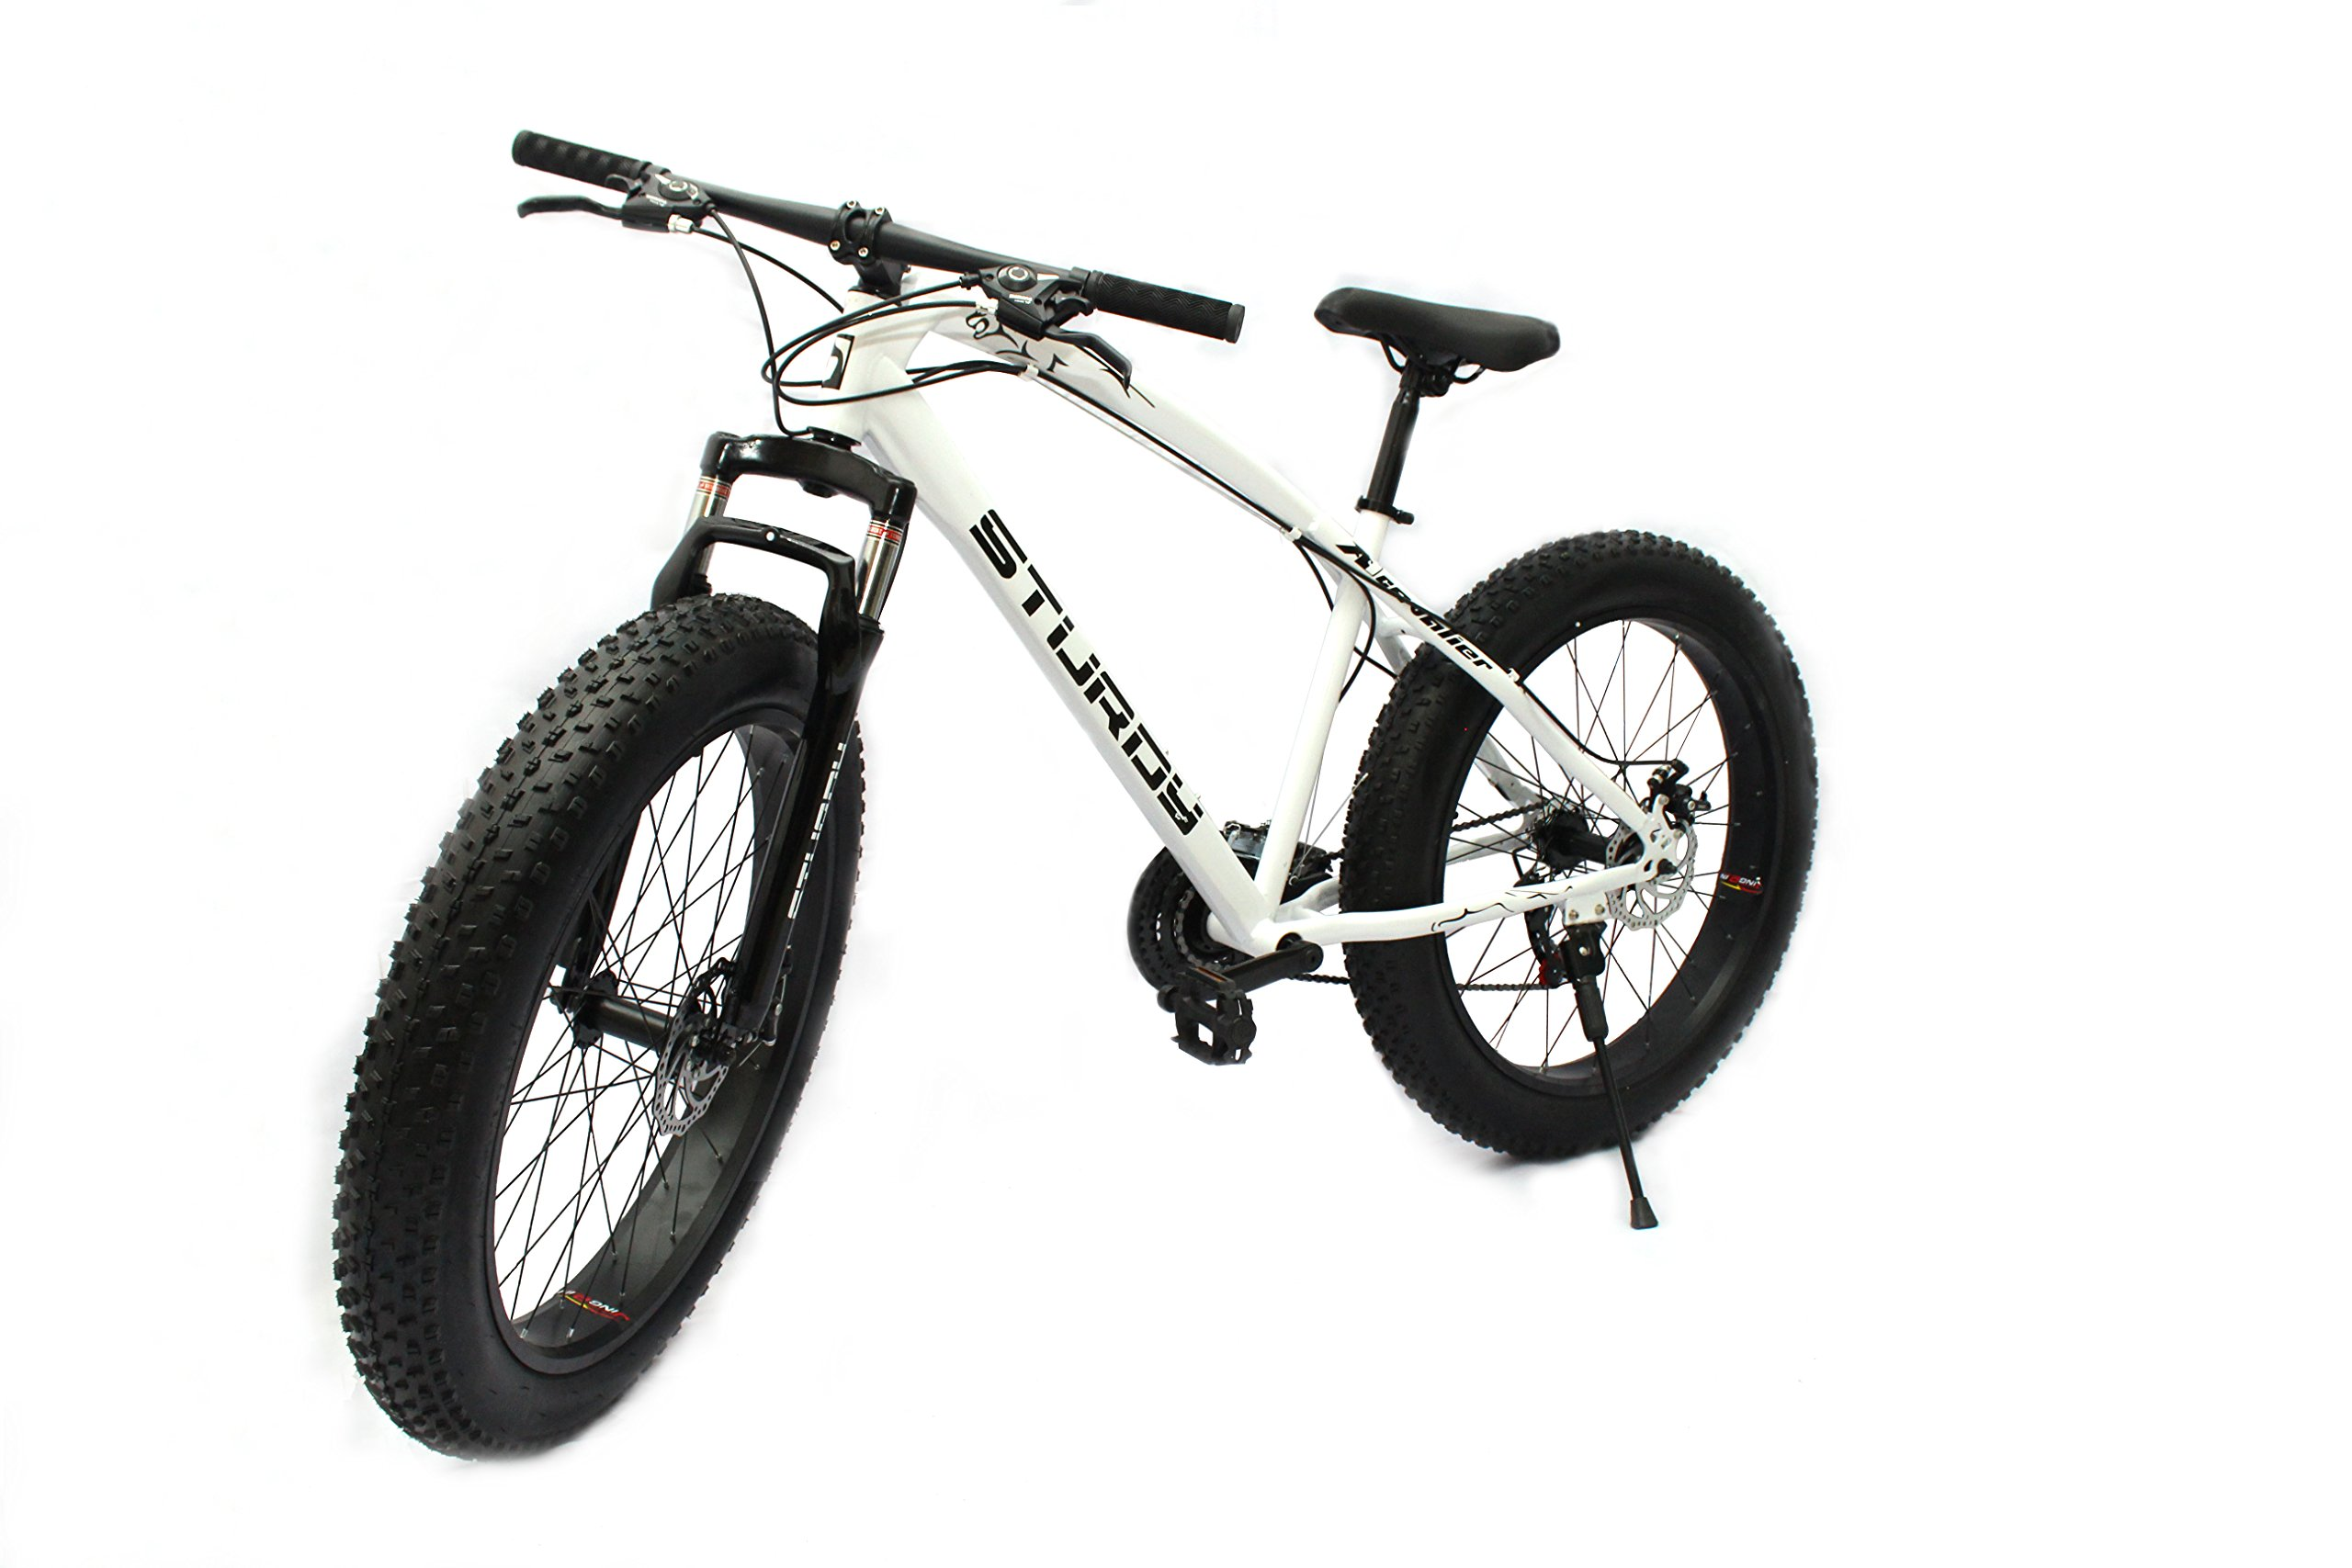 STURDY BIKES Mountain Carbon Steel Fat Bike with 26X4 inch Tyres (White) product image